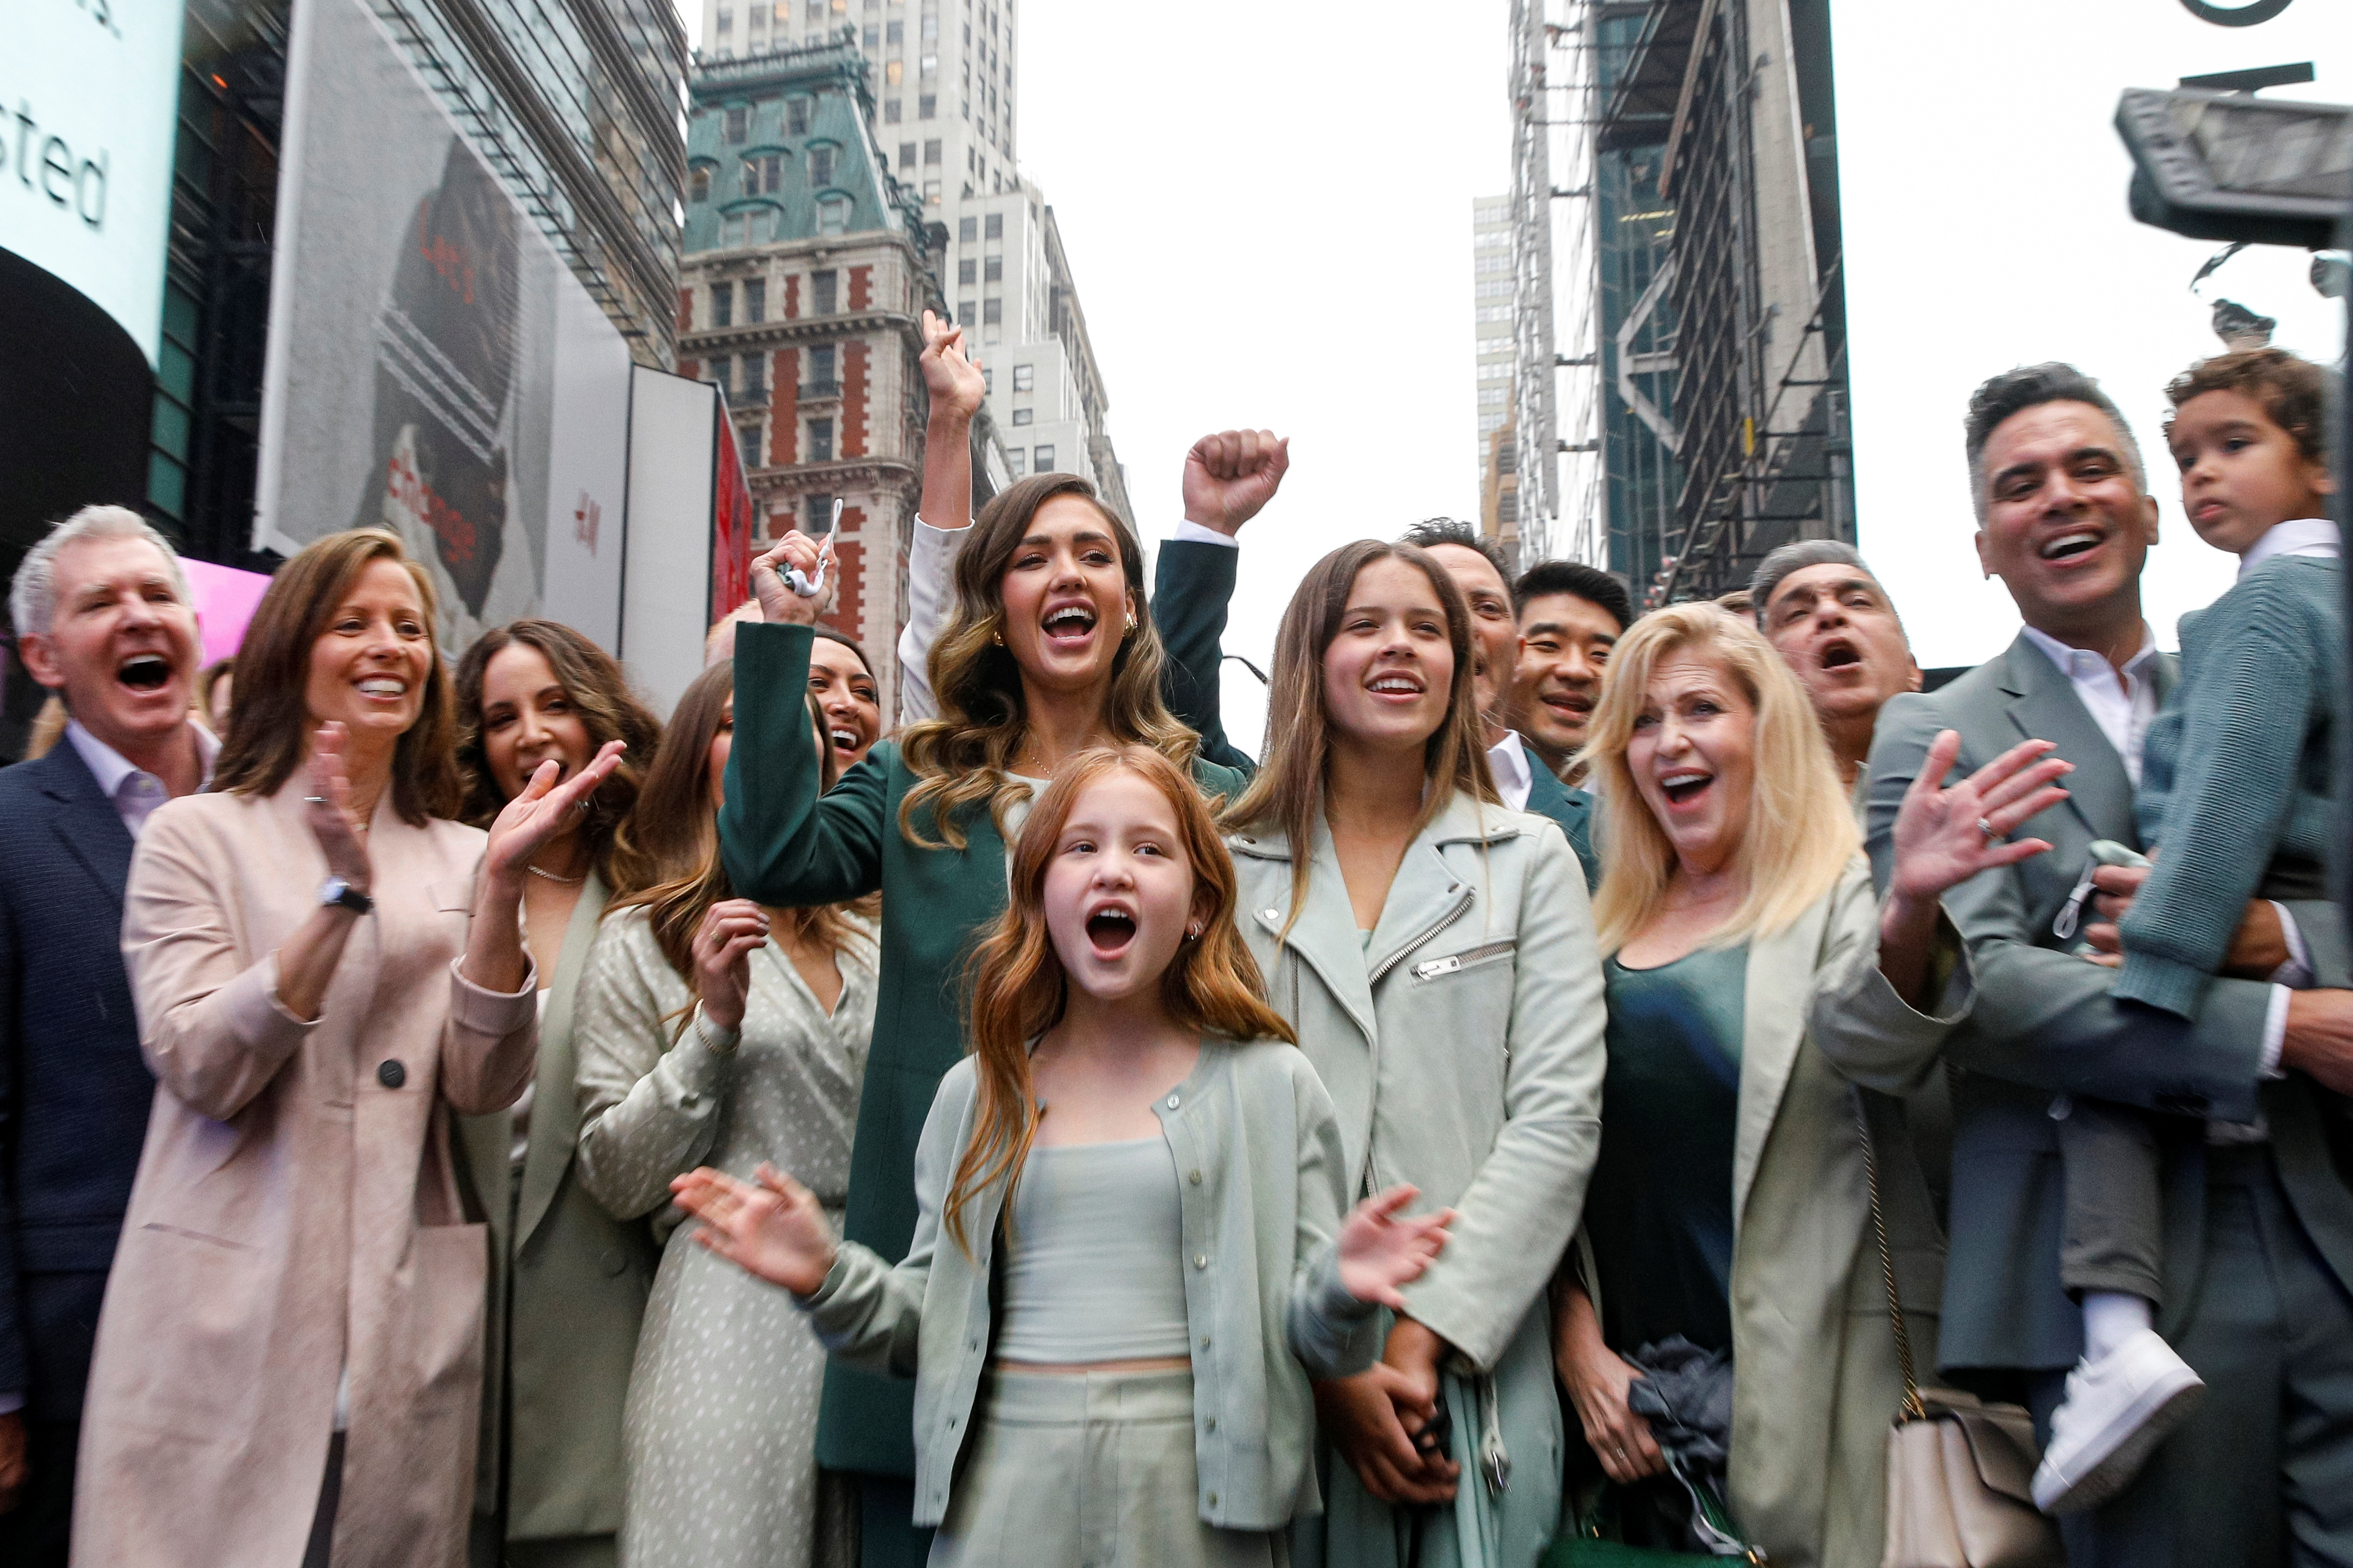 Jessica Alba, actor and businesswoman, poses for photographers with guests and family during the IPO of The Honest Company at the Nasdaq Market site in Times Square in New York City, U.S., May 5, 2021.  REUTERS/Brendan McDermid